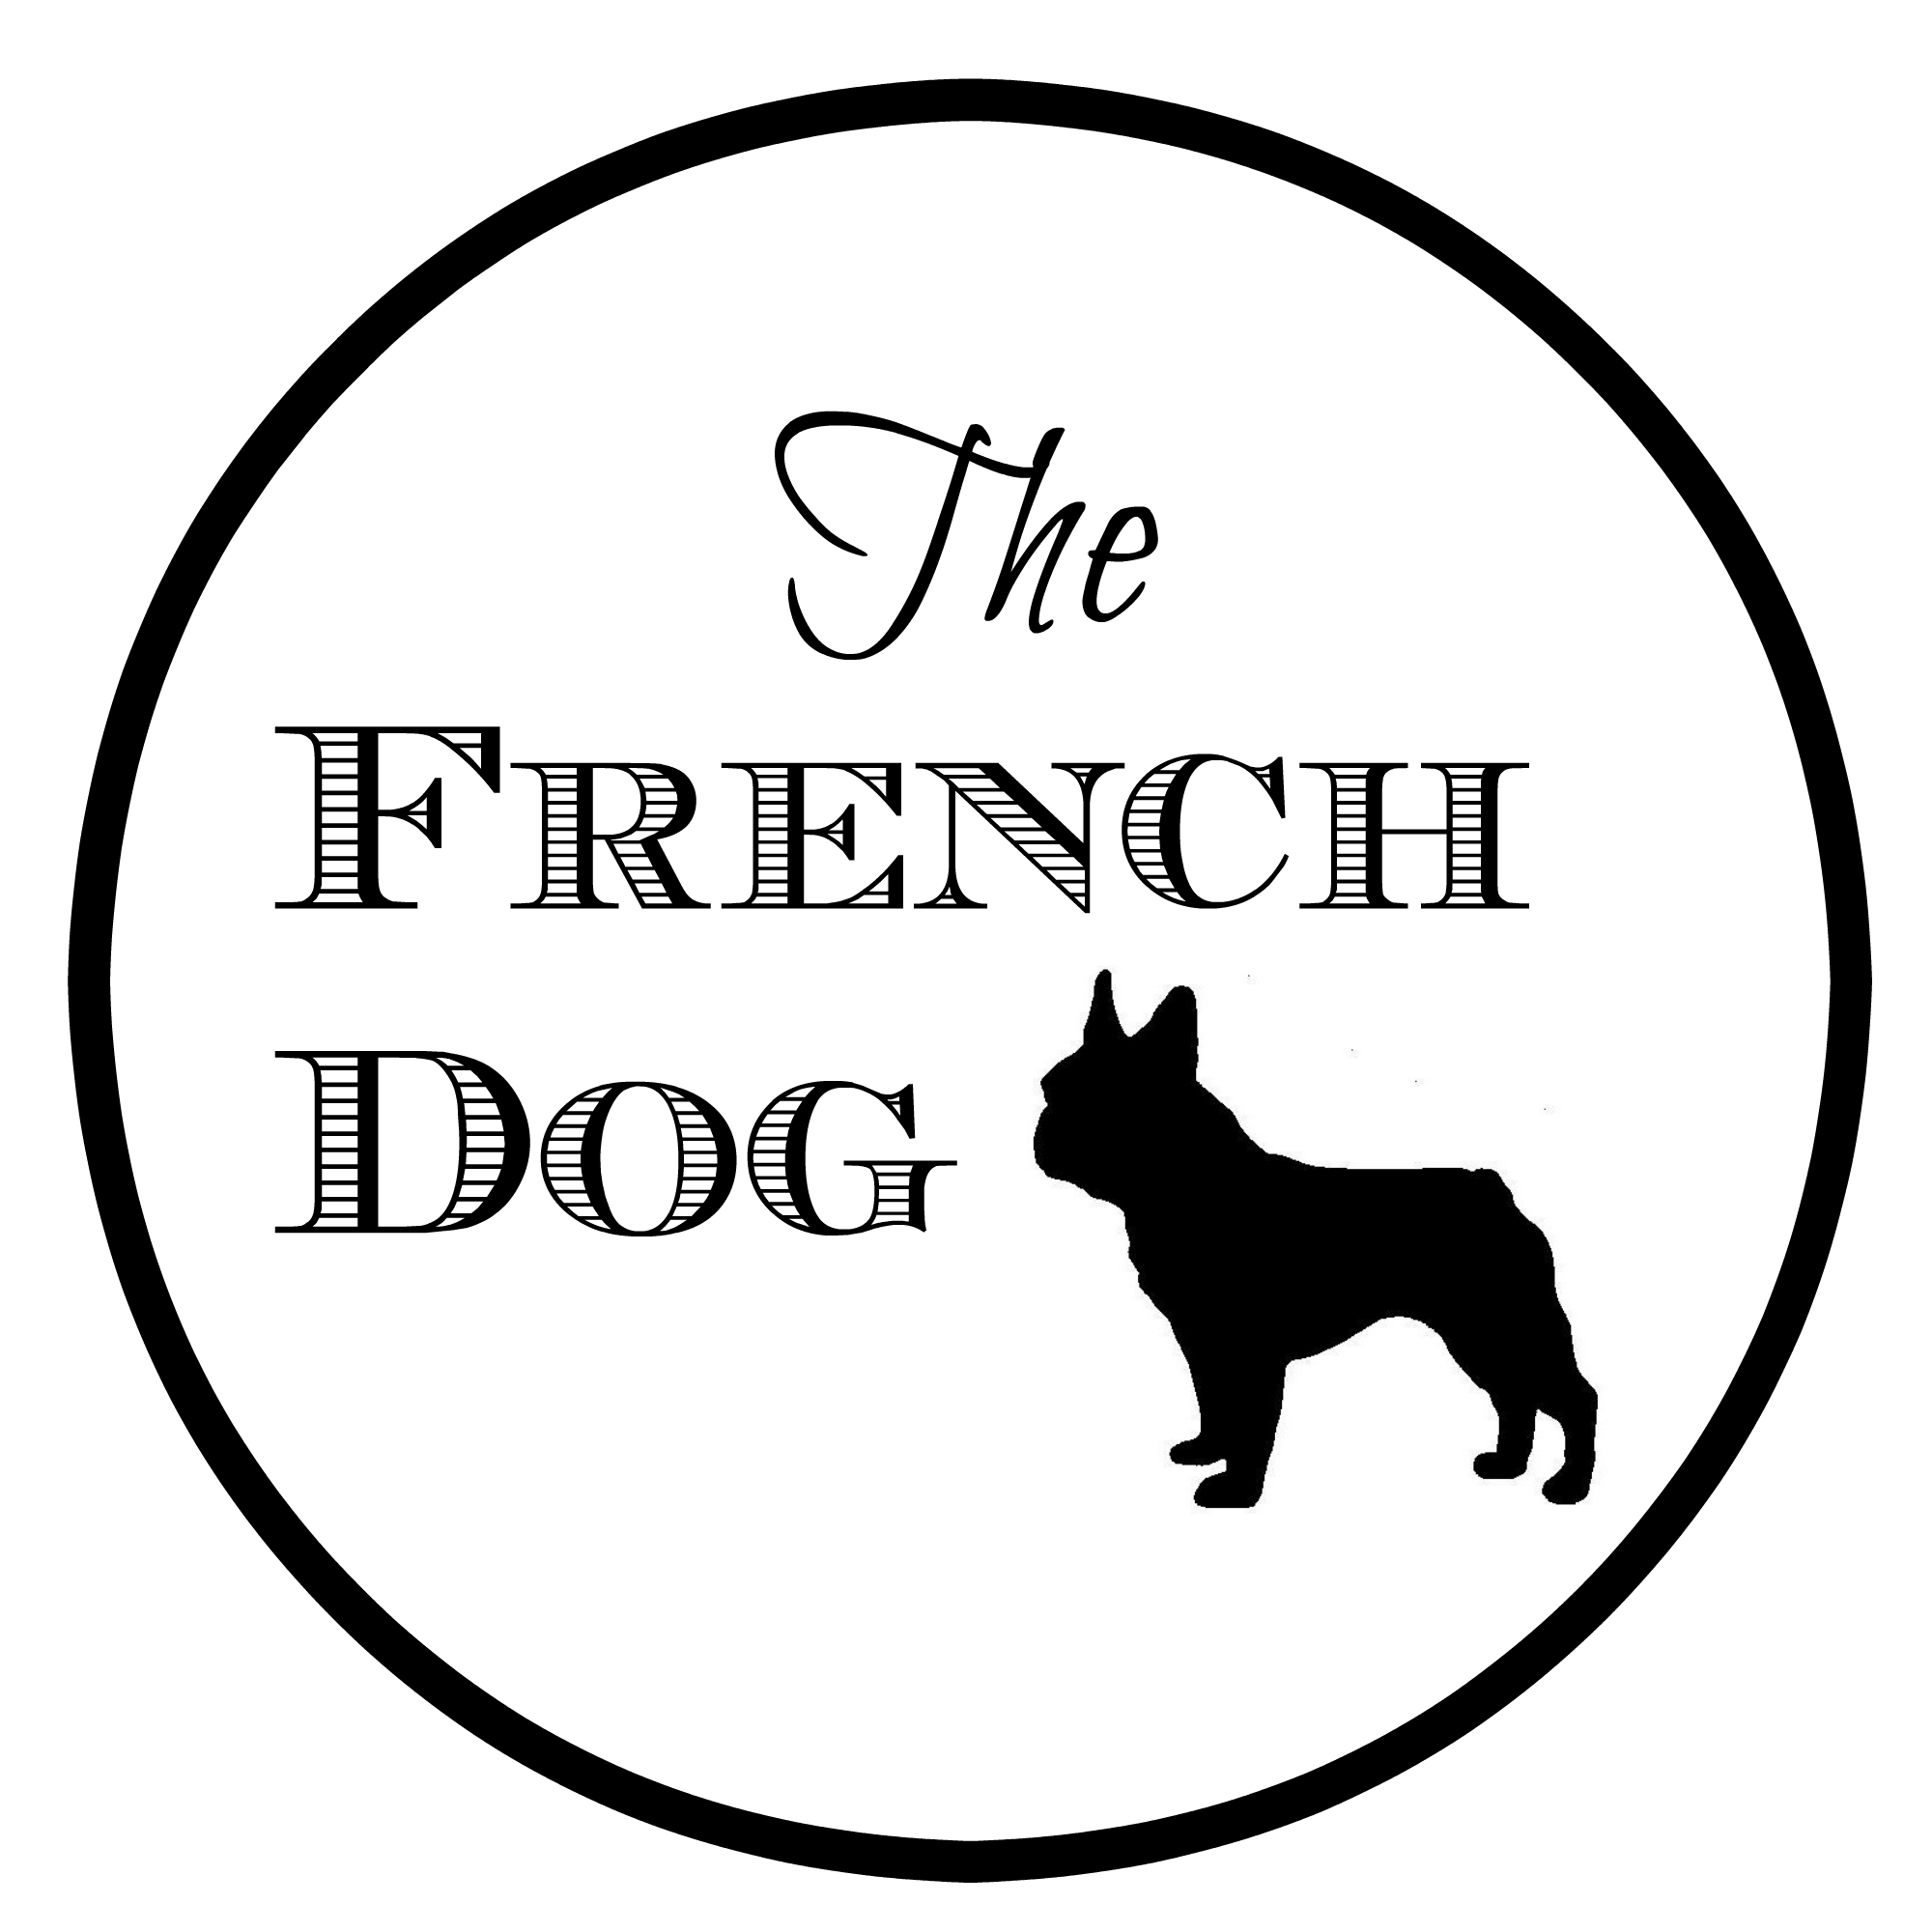 The french croppedfrenchdoglogopng. Drawing accessory dog picture freeuse